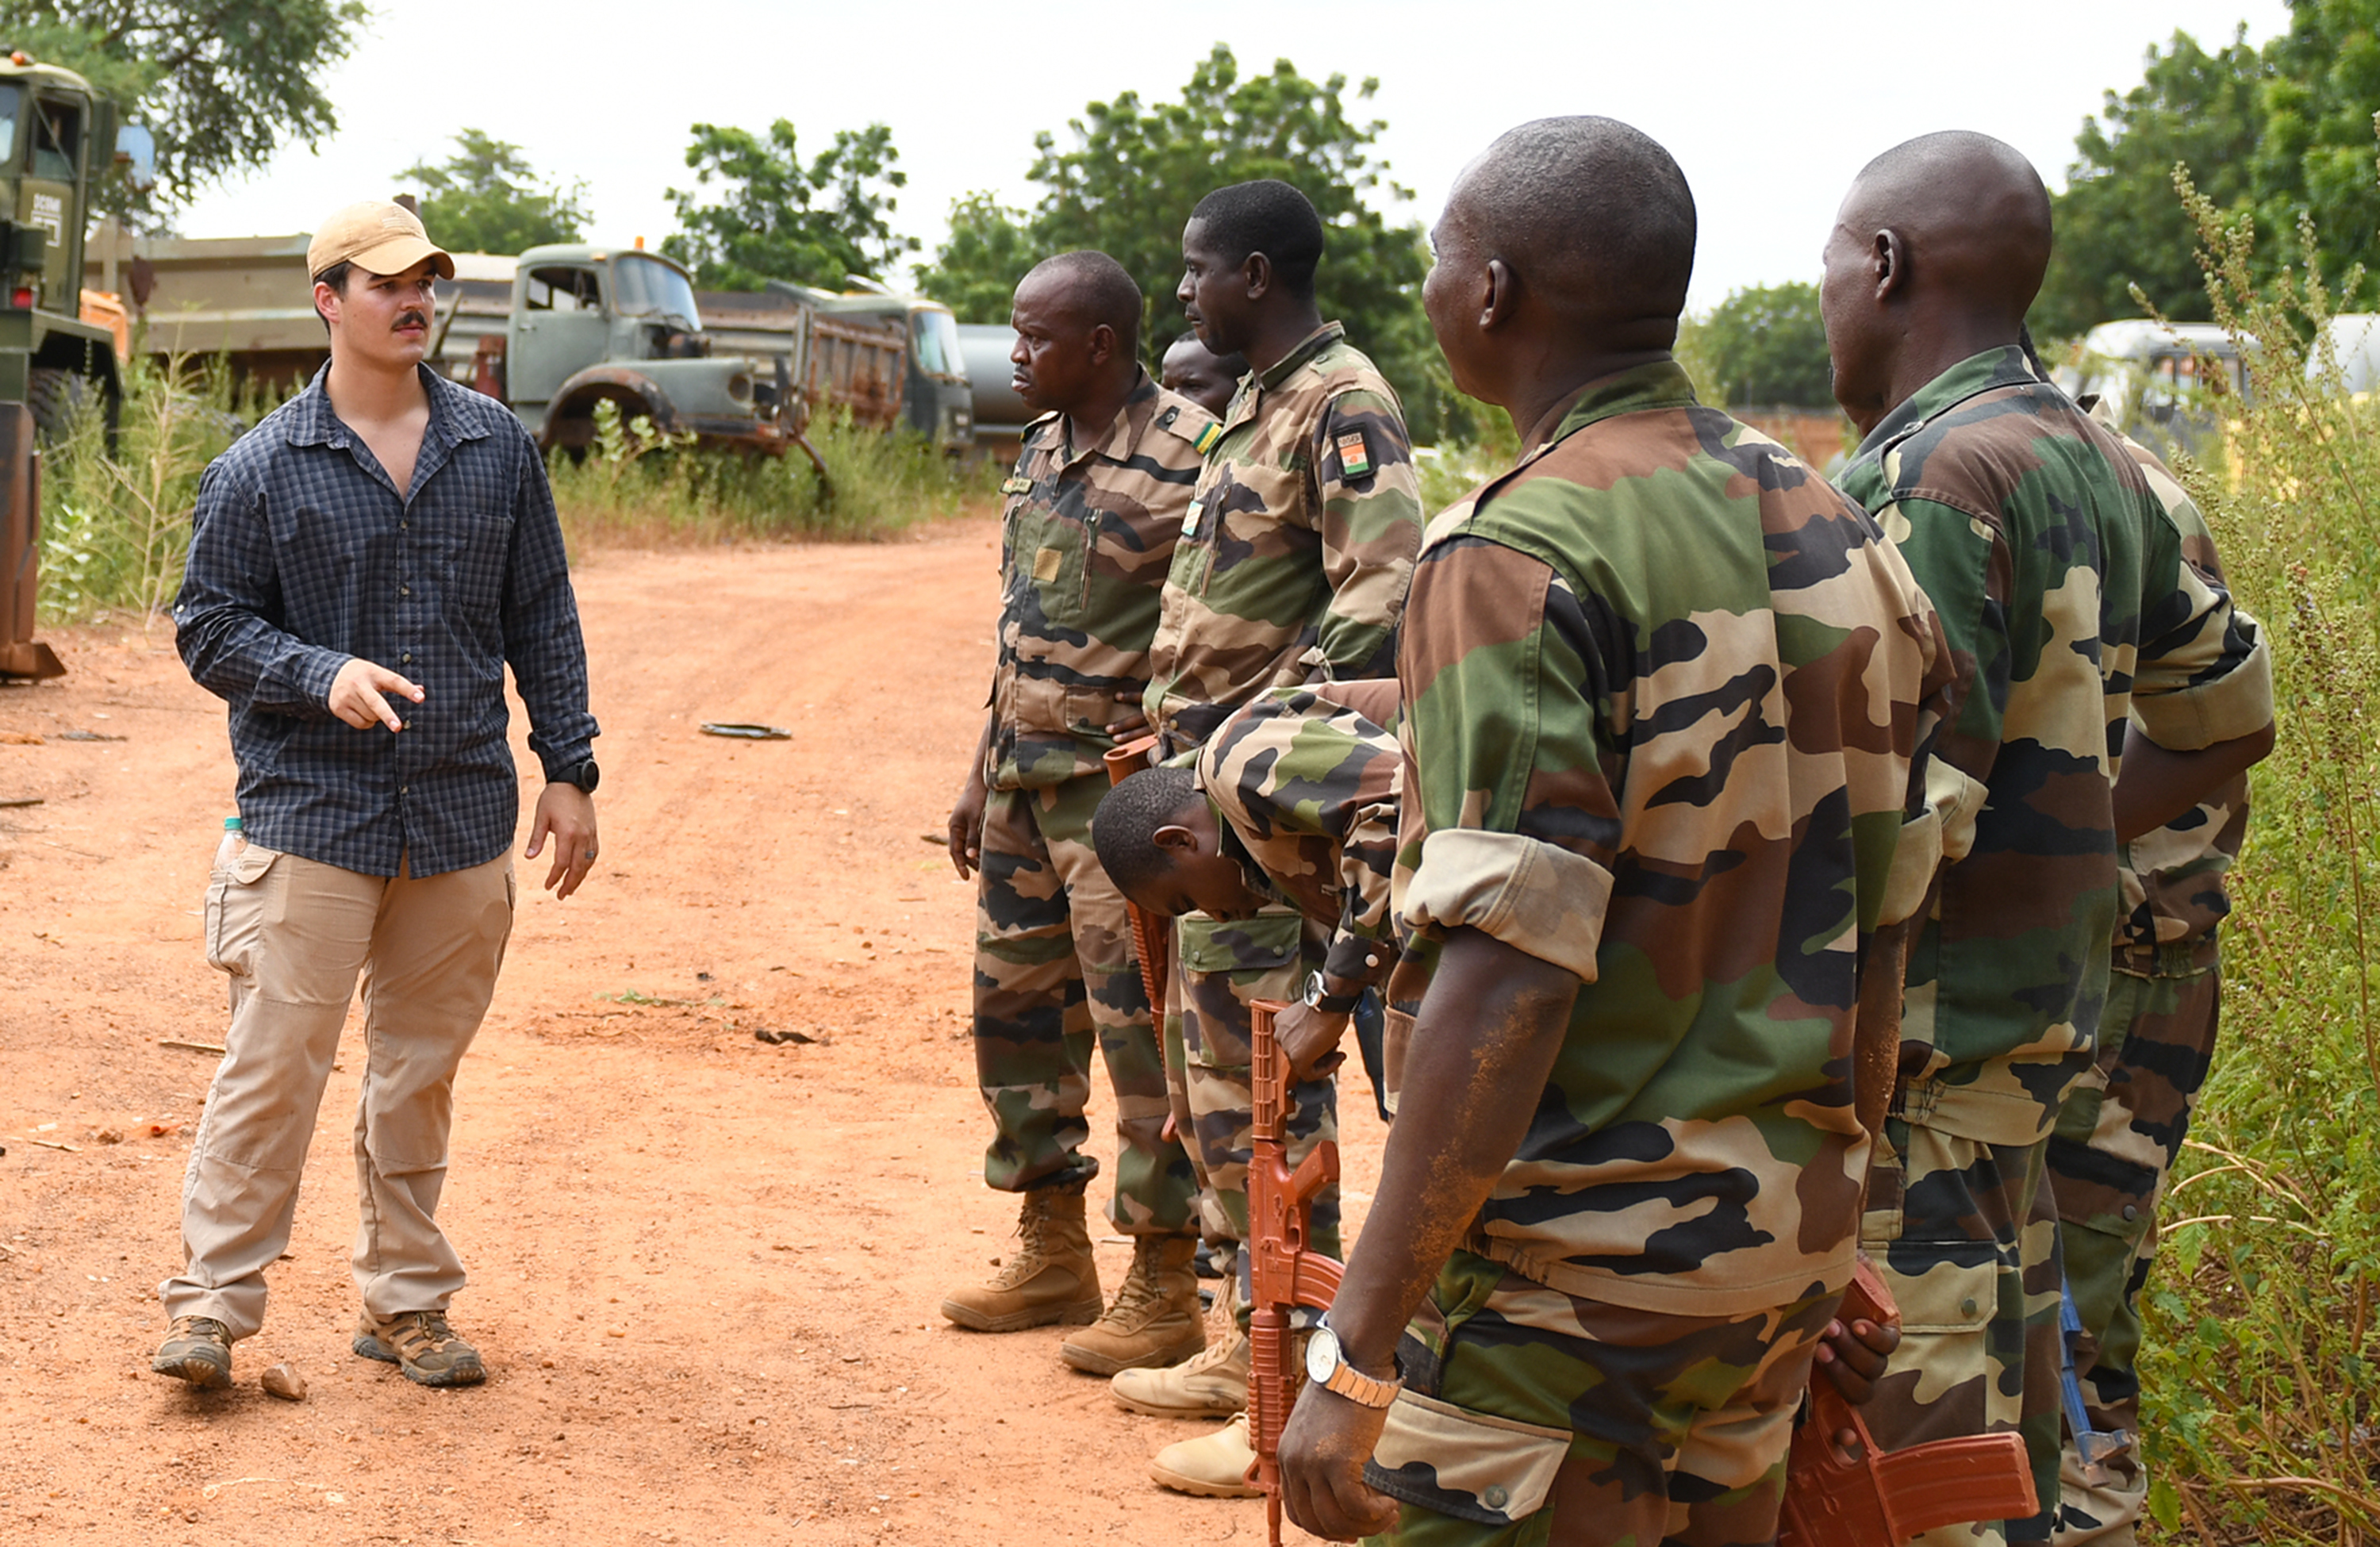 U.S. Air Force Senior Airman Caleb Love, 768th Expeditionary Air Base Squadron Explosive Ordnance Disposal team member, teaches members of the Forces Armées Nigeriennes (Nigerien Armed Forces) Genie Unit how to locate an improvised explosive device during an IED Awareness Course in Niamey, Niger, Oct. 11, 2019. During this week-long course, the FAN learned how to locate and react to an IED, set up a cordon and procedures to clear the area. (U.S. Air Force photo by Staff Sgt. Alex Fox Echols III)